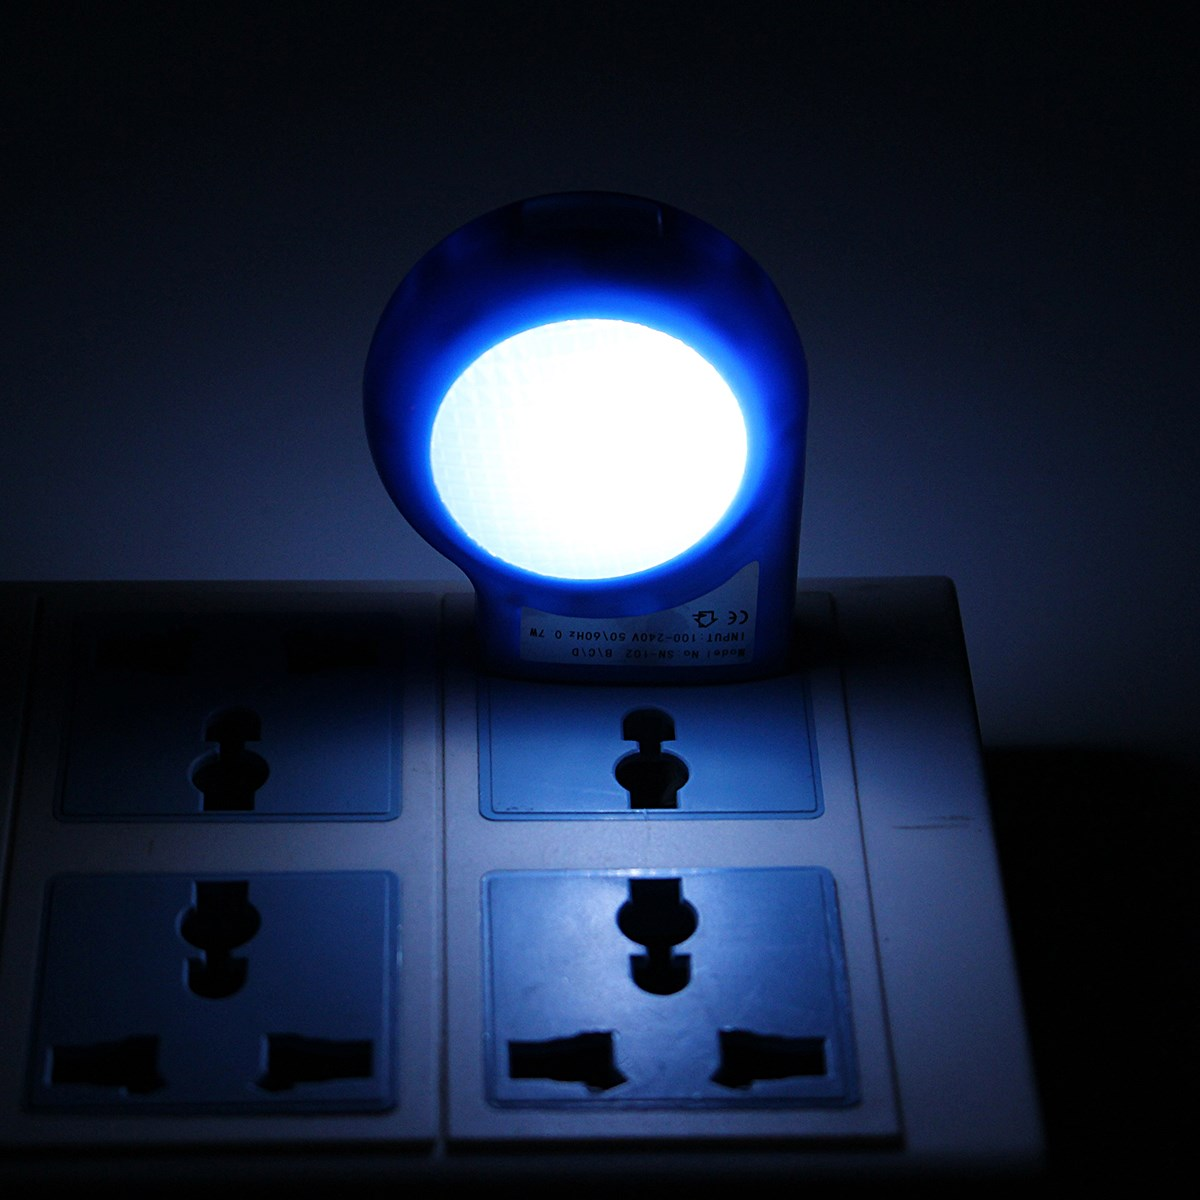 Mini 0.7W LED Night Light Lamp With Sensor Induction Control For ...